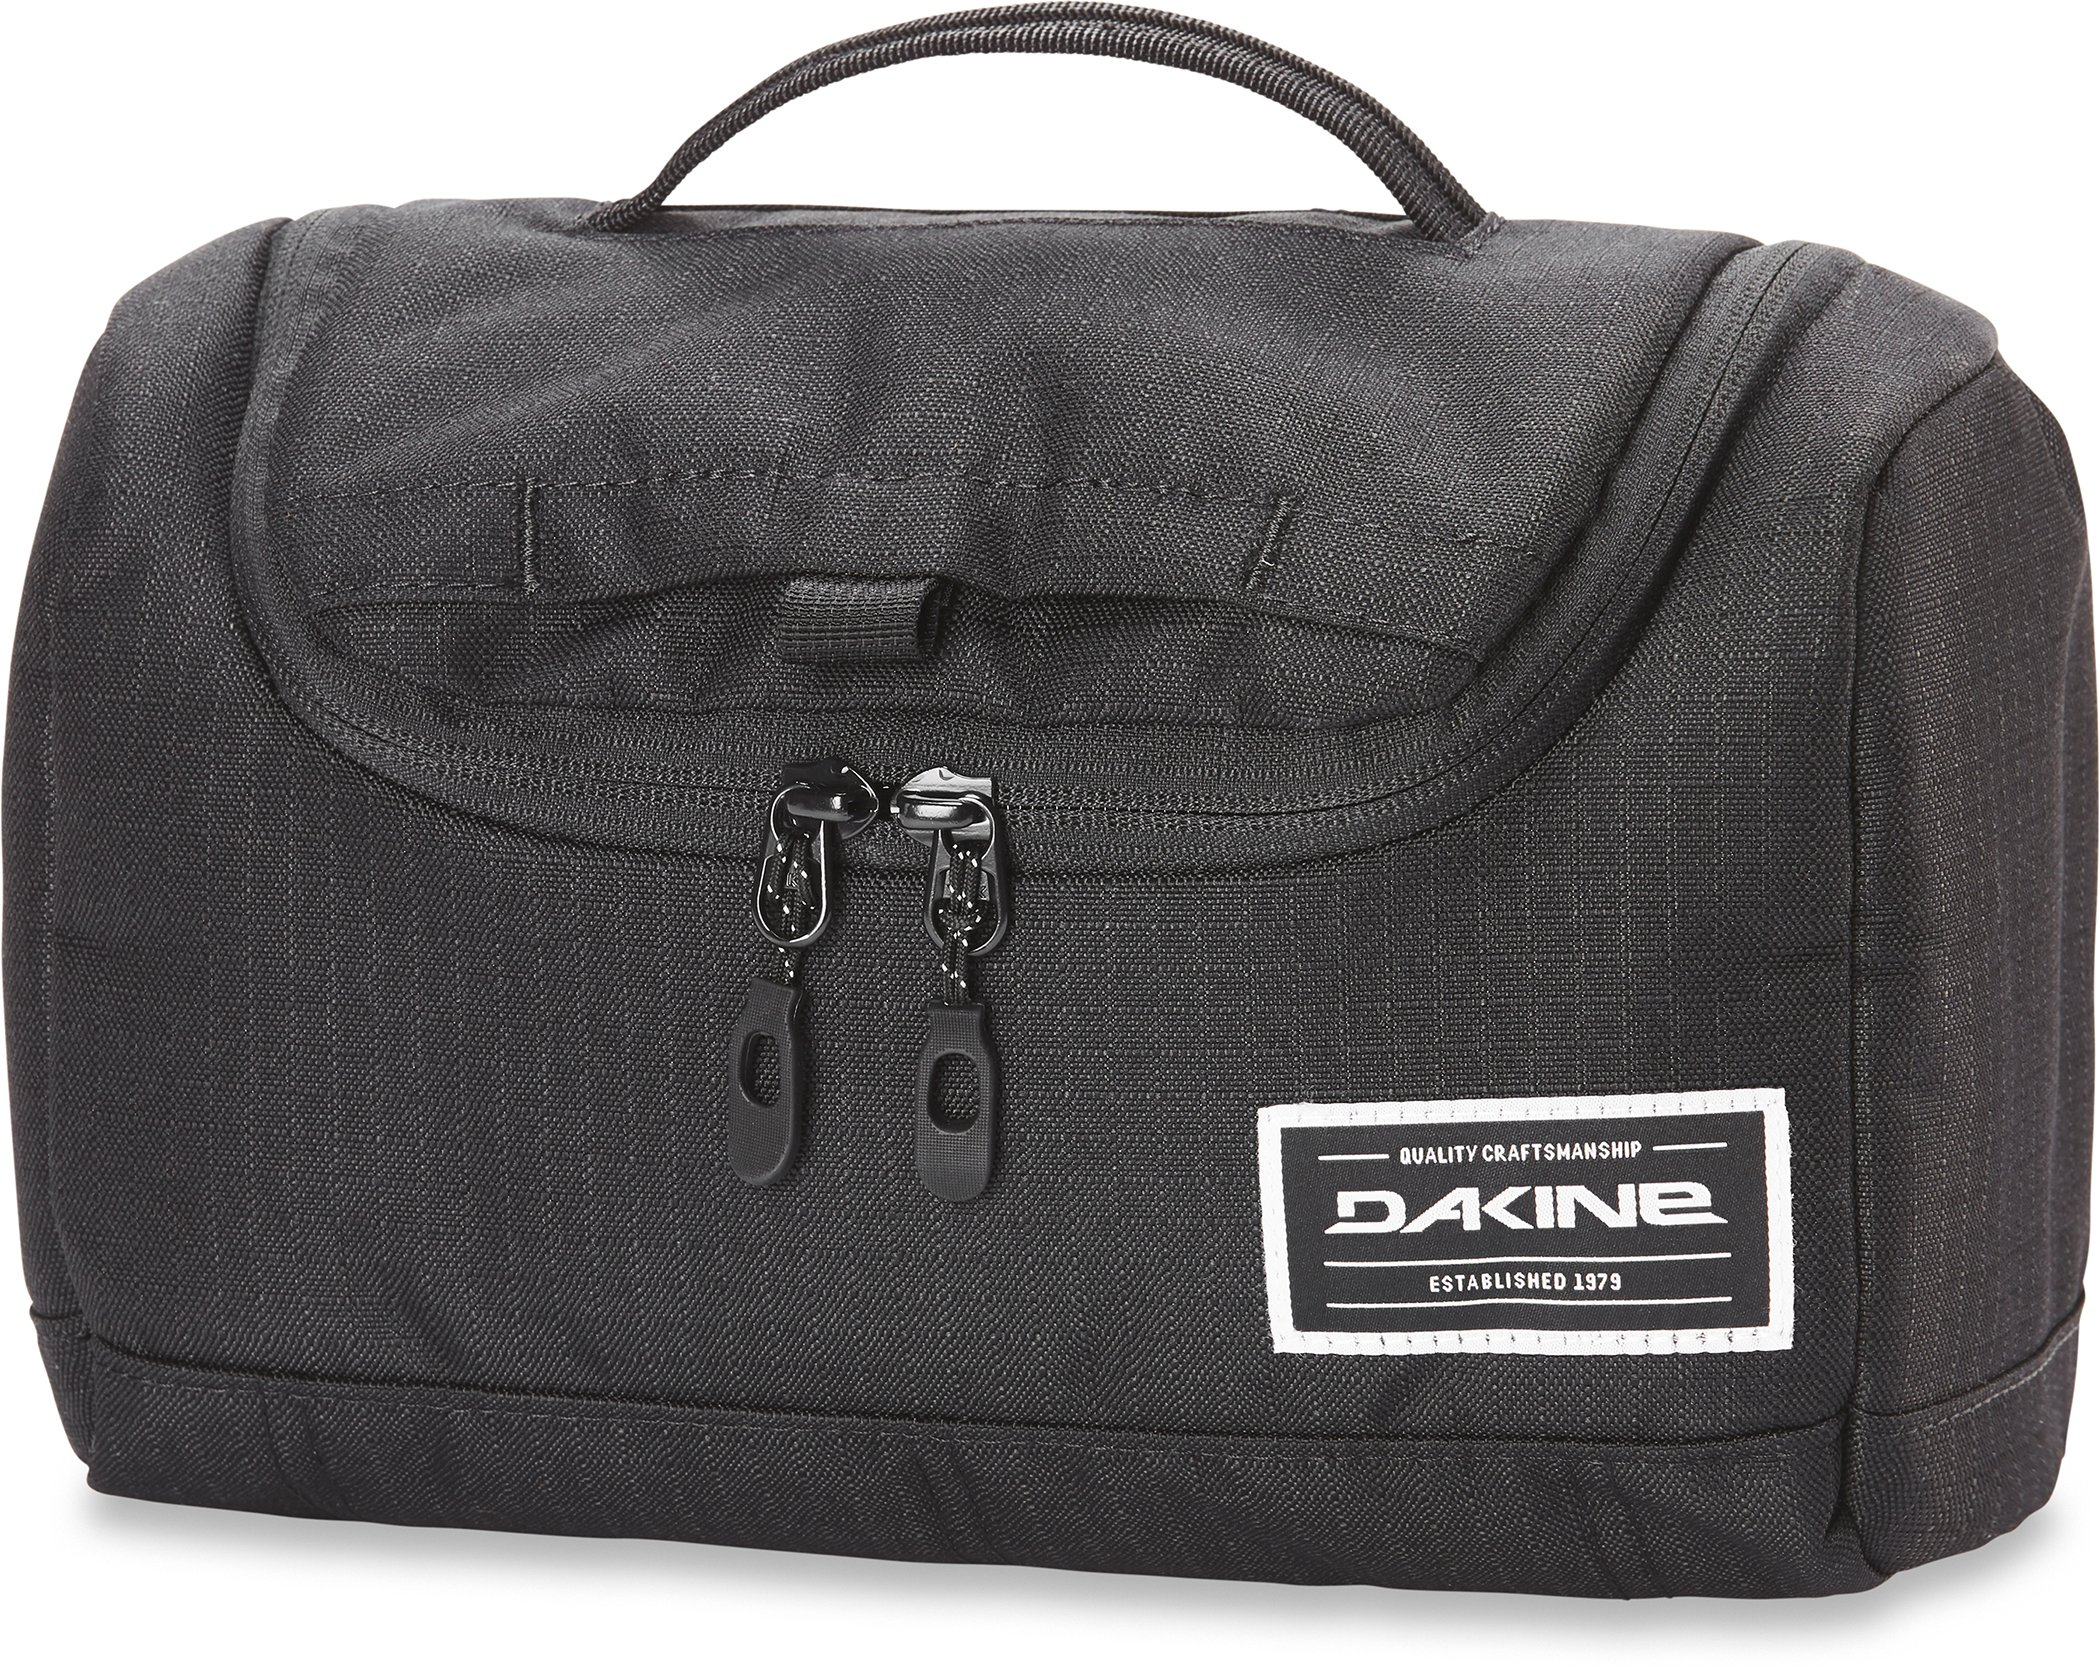 Dakine Unisex Revival Kit Toiletry Dopp Kit, Large, Black